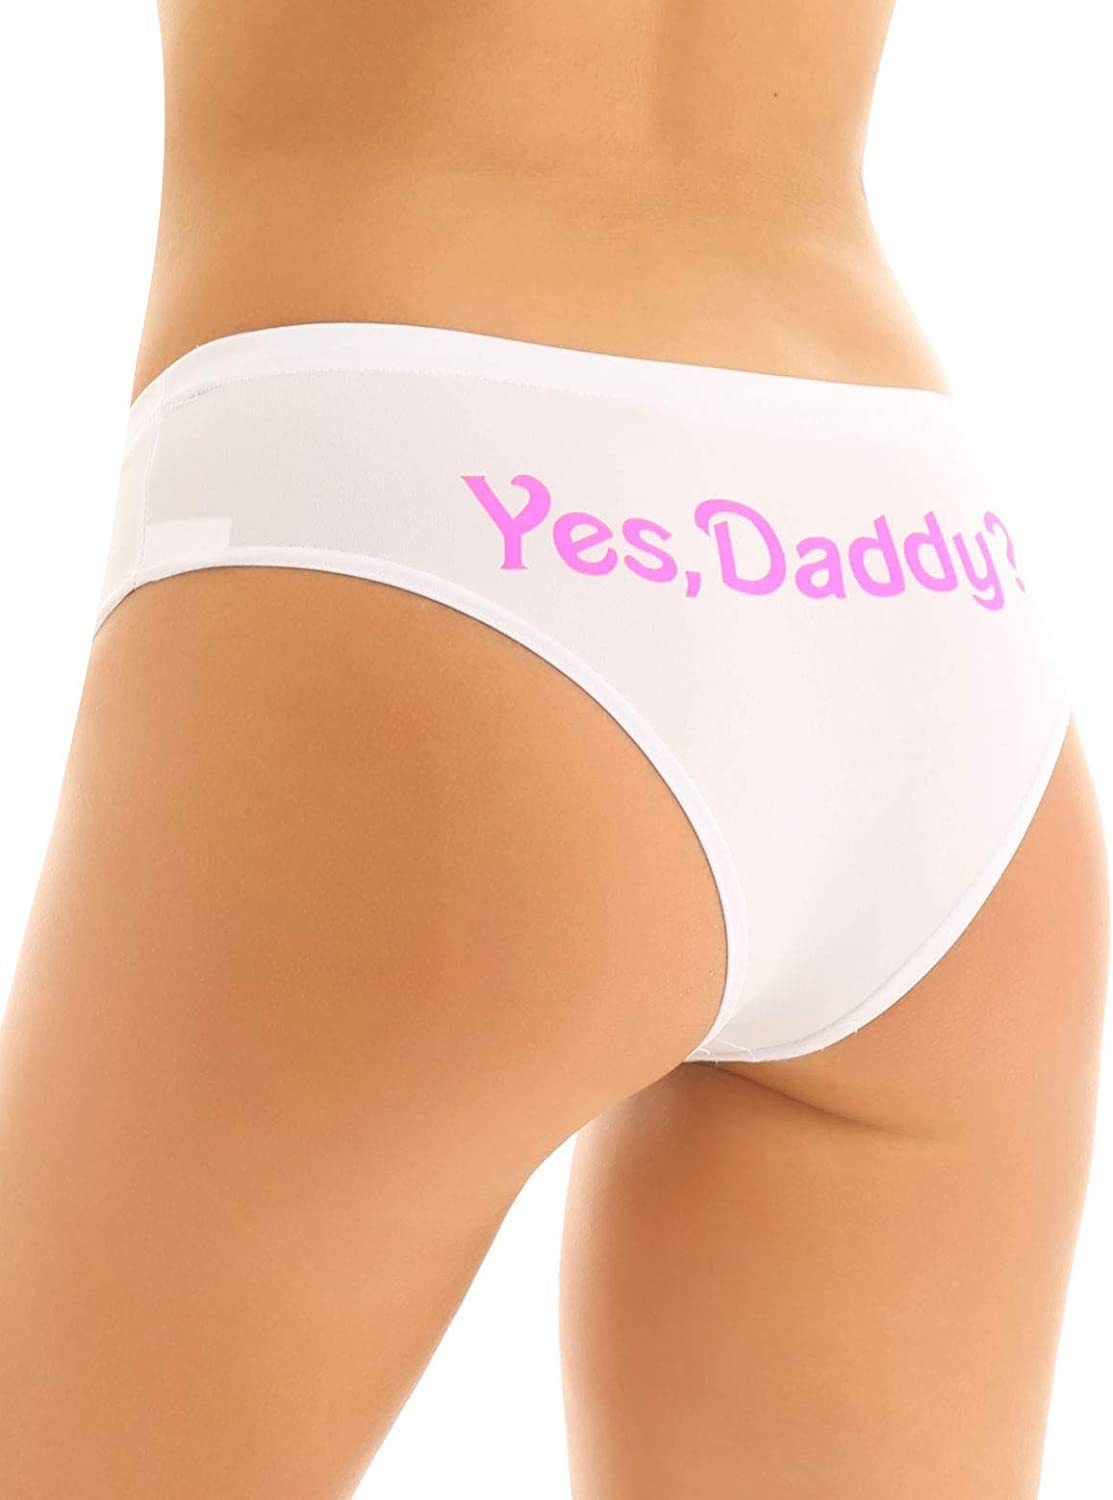 Freebily Womens Yes Daddy Letter Printed Low Rise Knickers Cheeky Panties Underwear